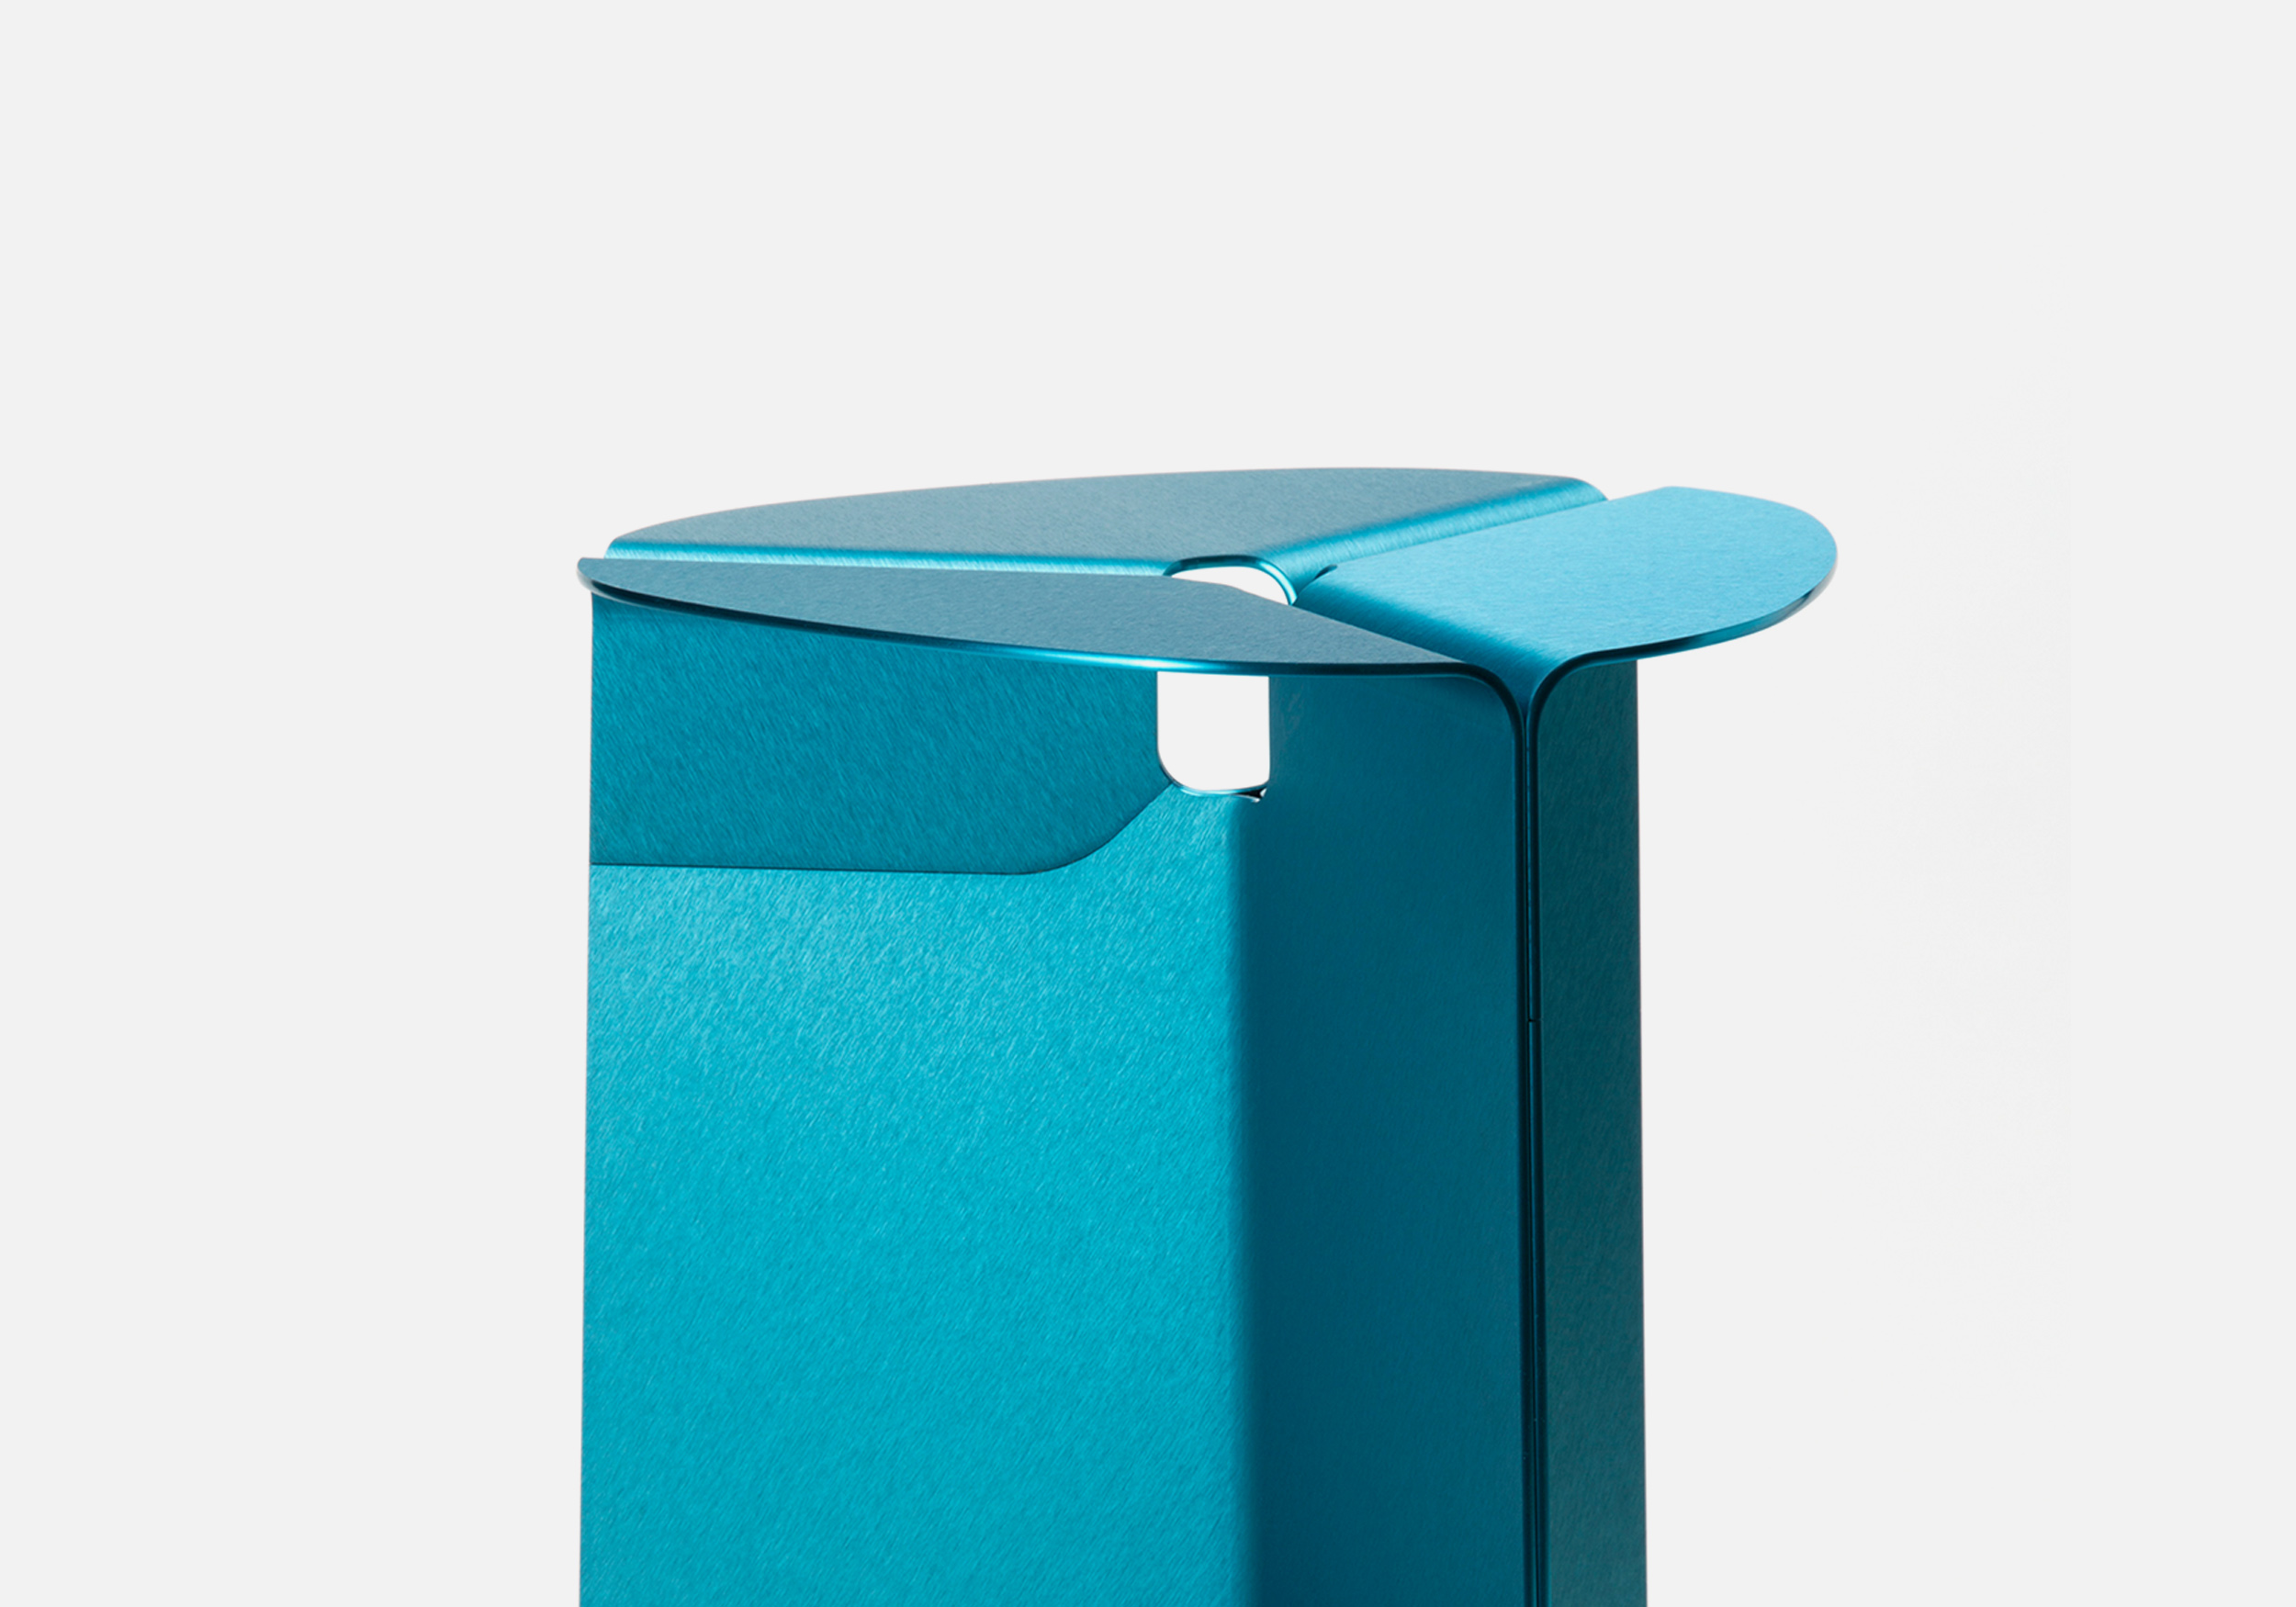 Studio Feay - Trifold Stool